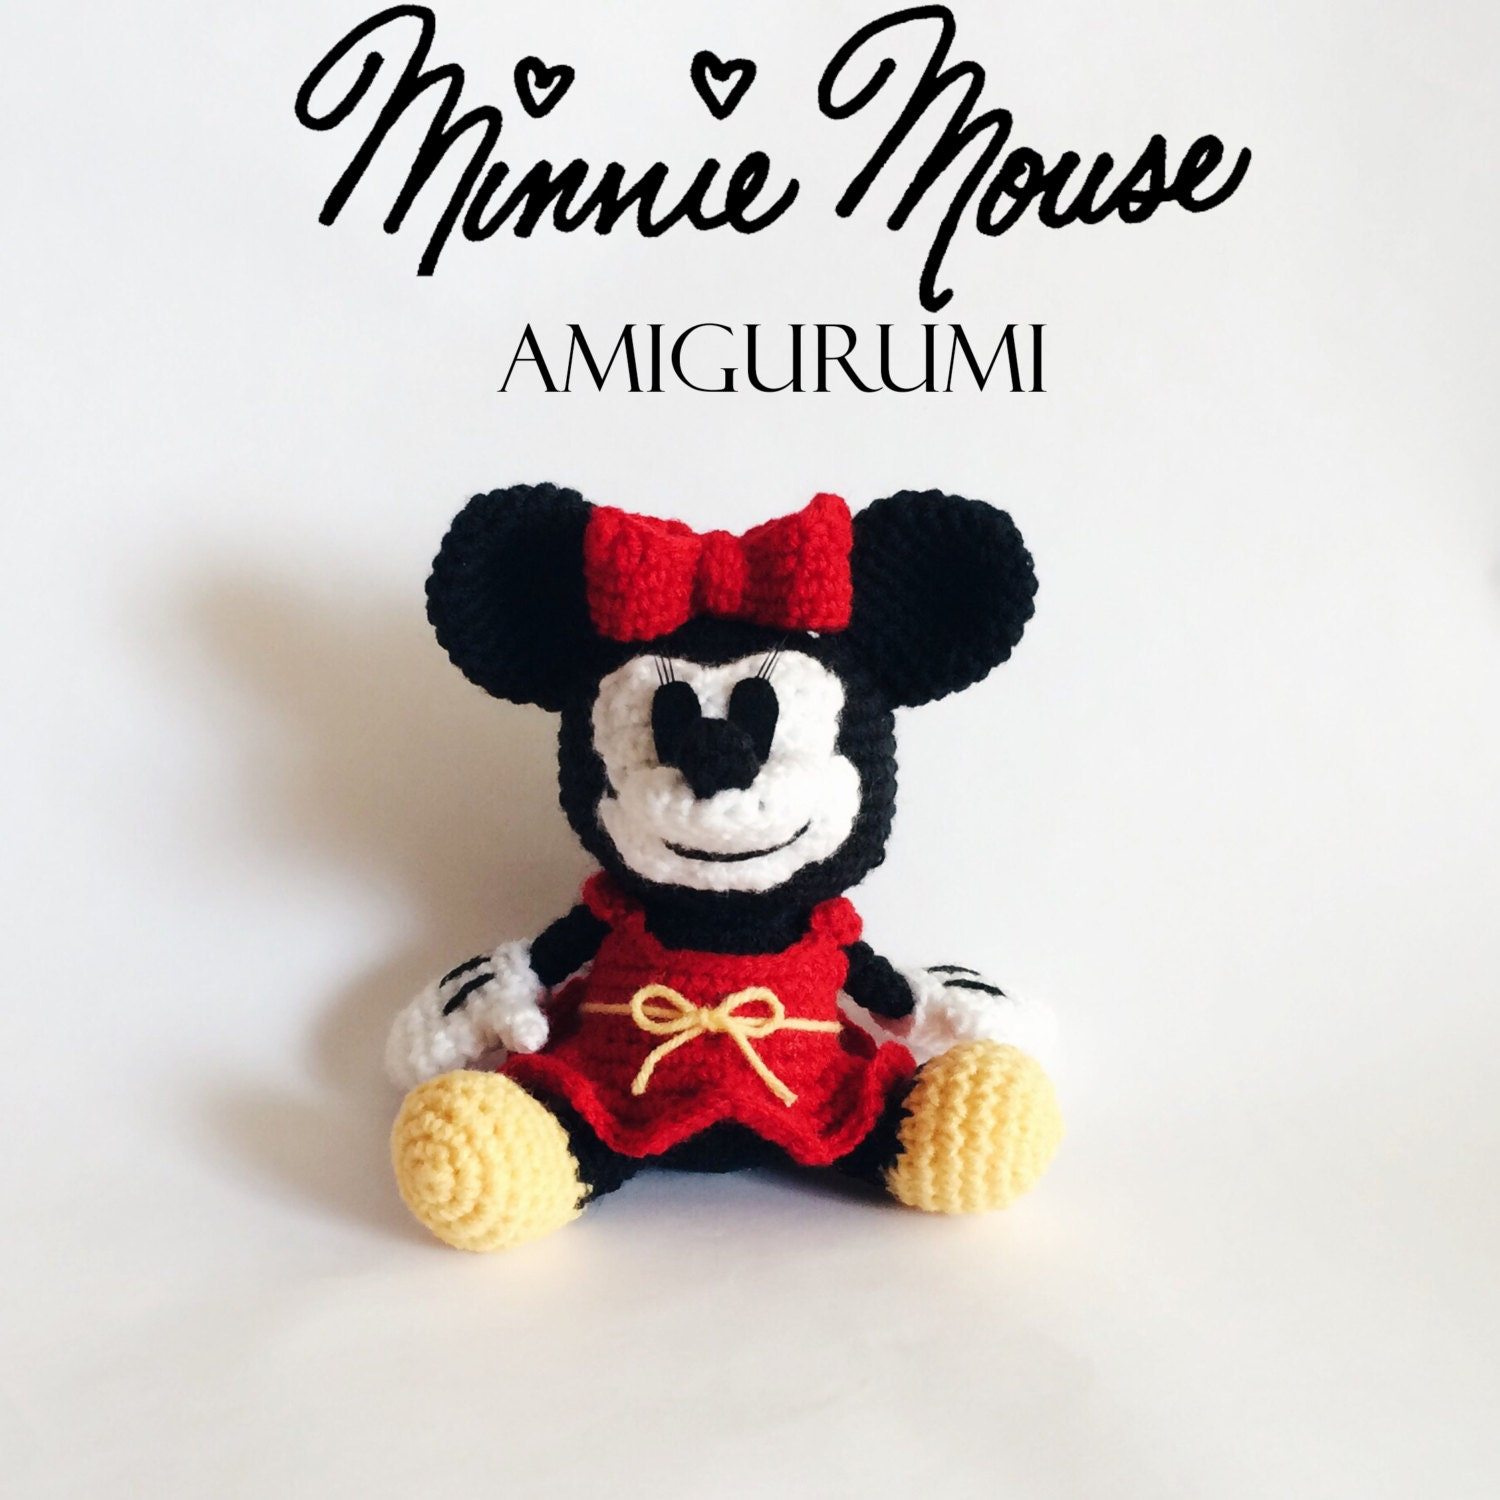 Minnie mouse amigurumi crochet pattern pdf zoom bankloansurffo Choice Image